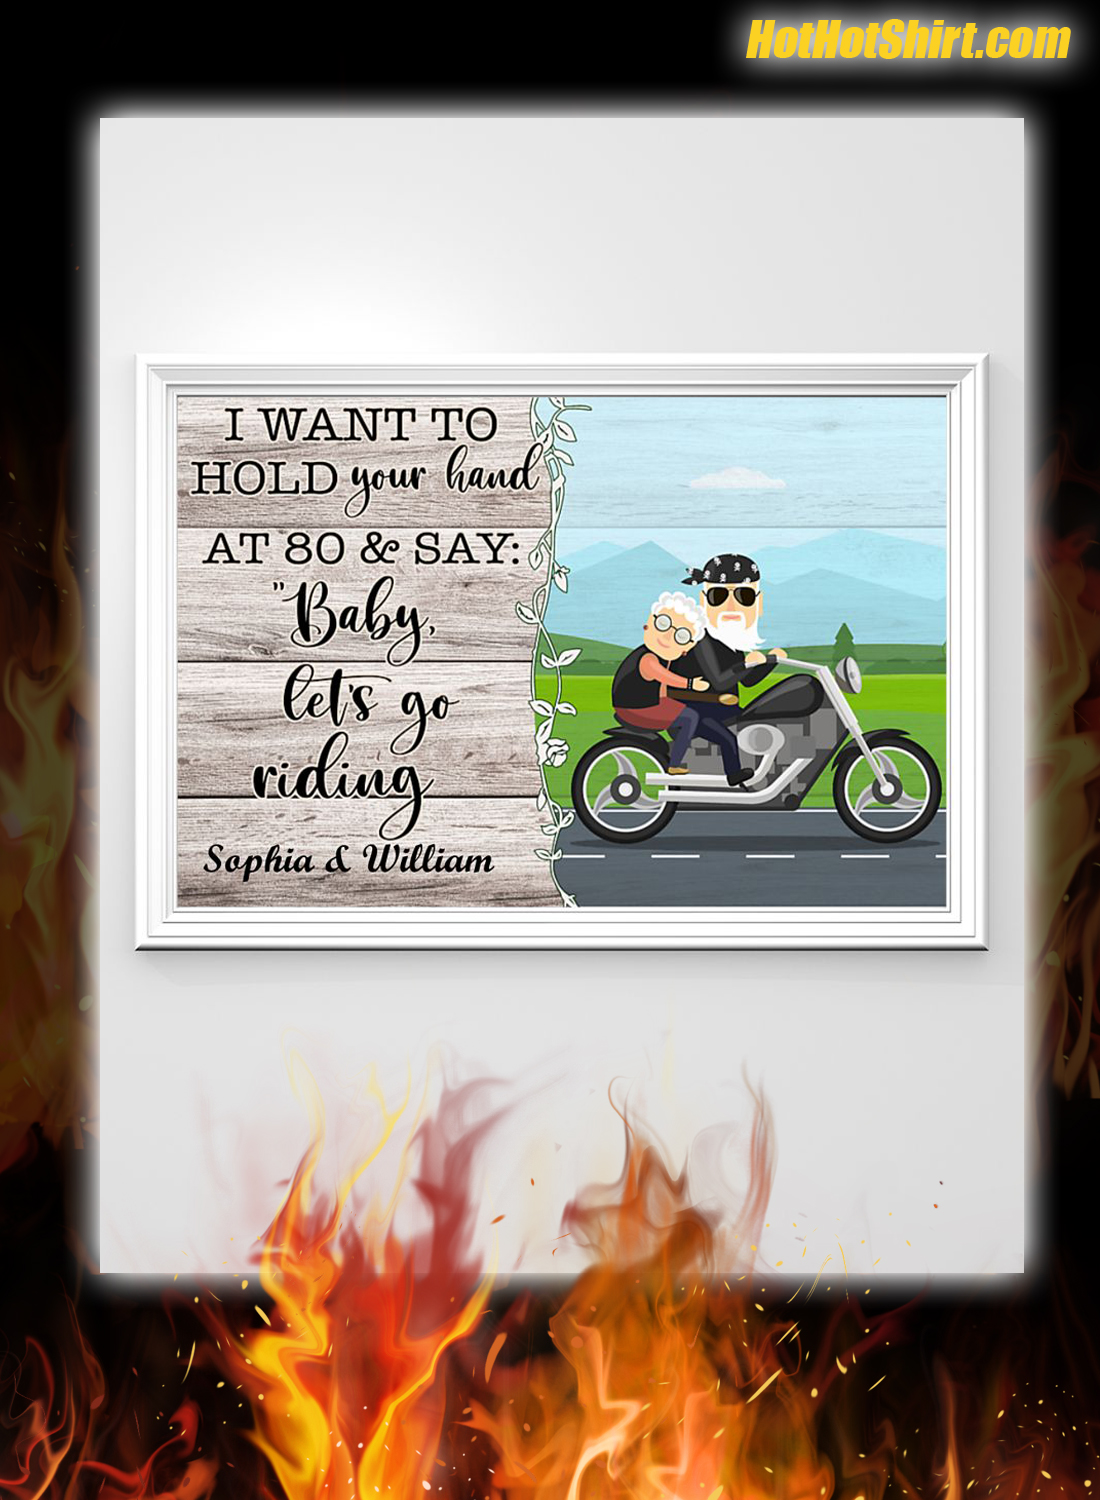 Personalized I Want To Hold Your Hand At 80 And Say Baby Let Go Riding Poster 2